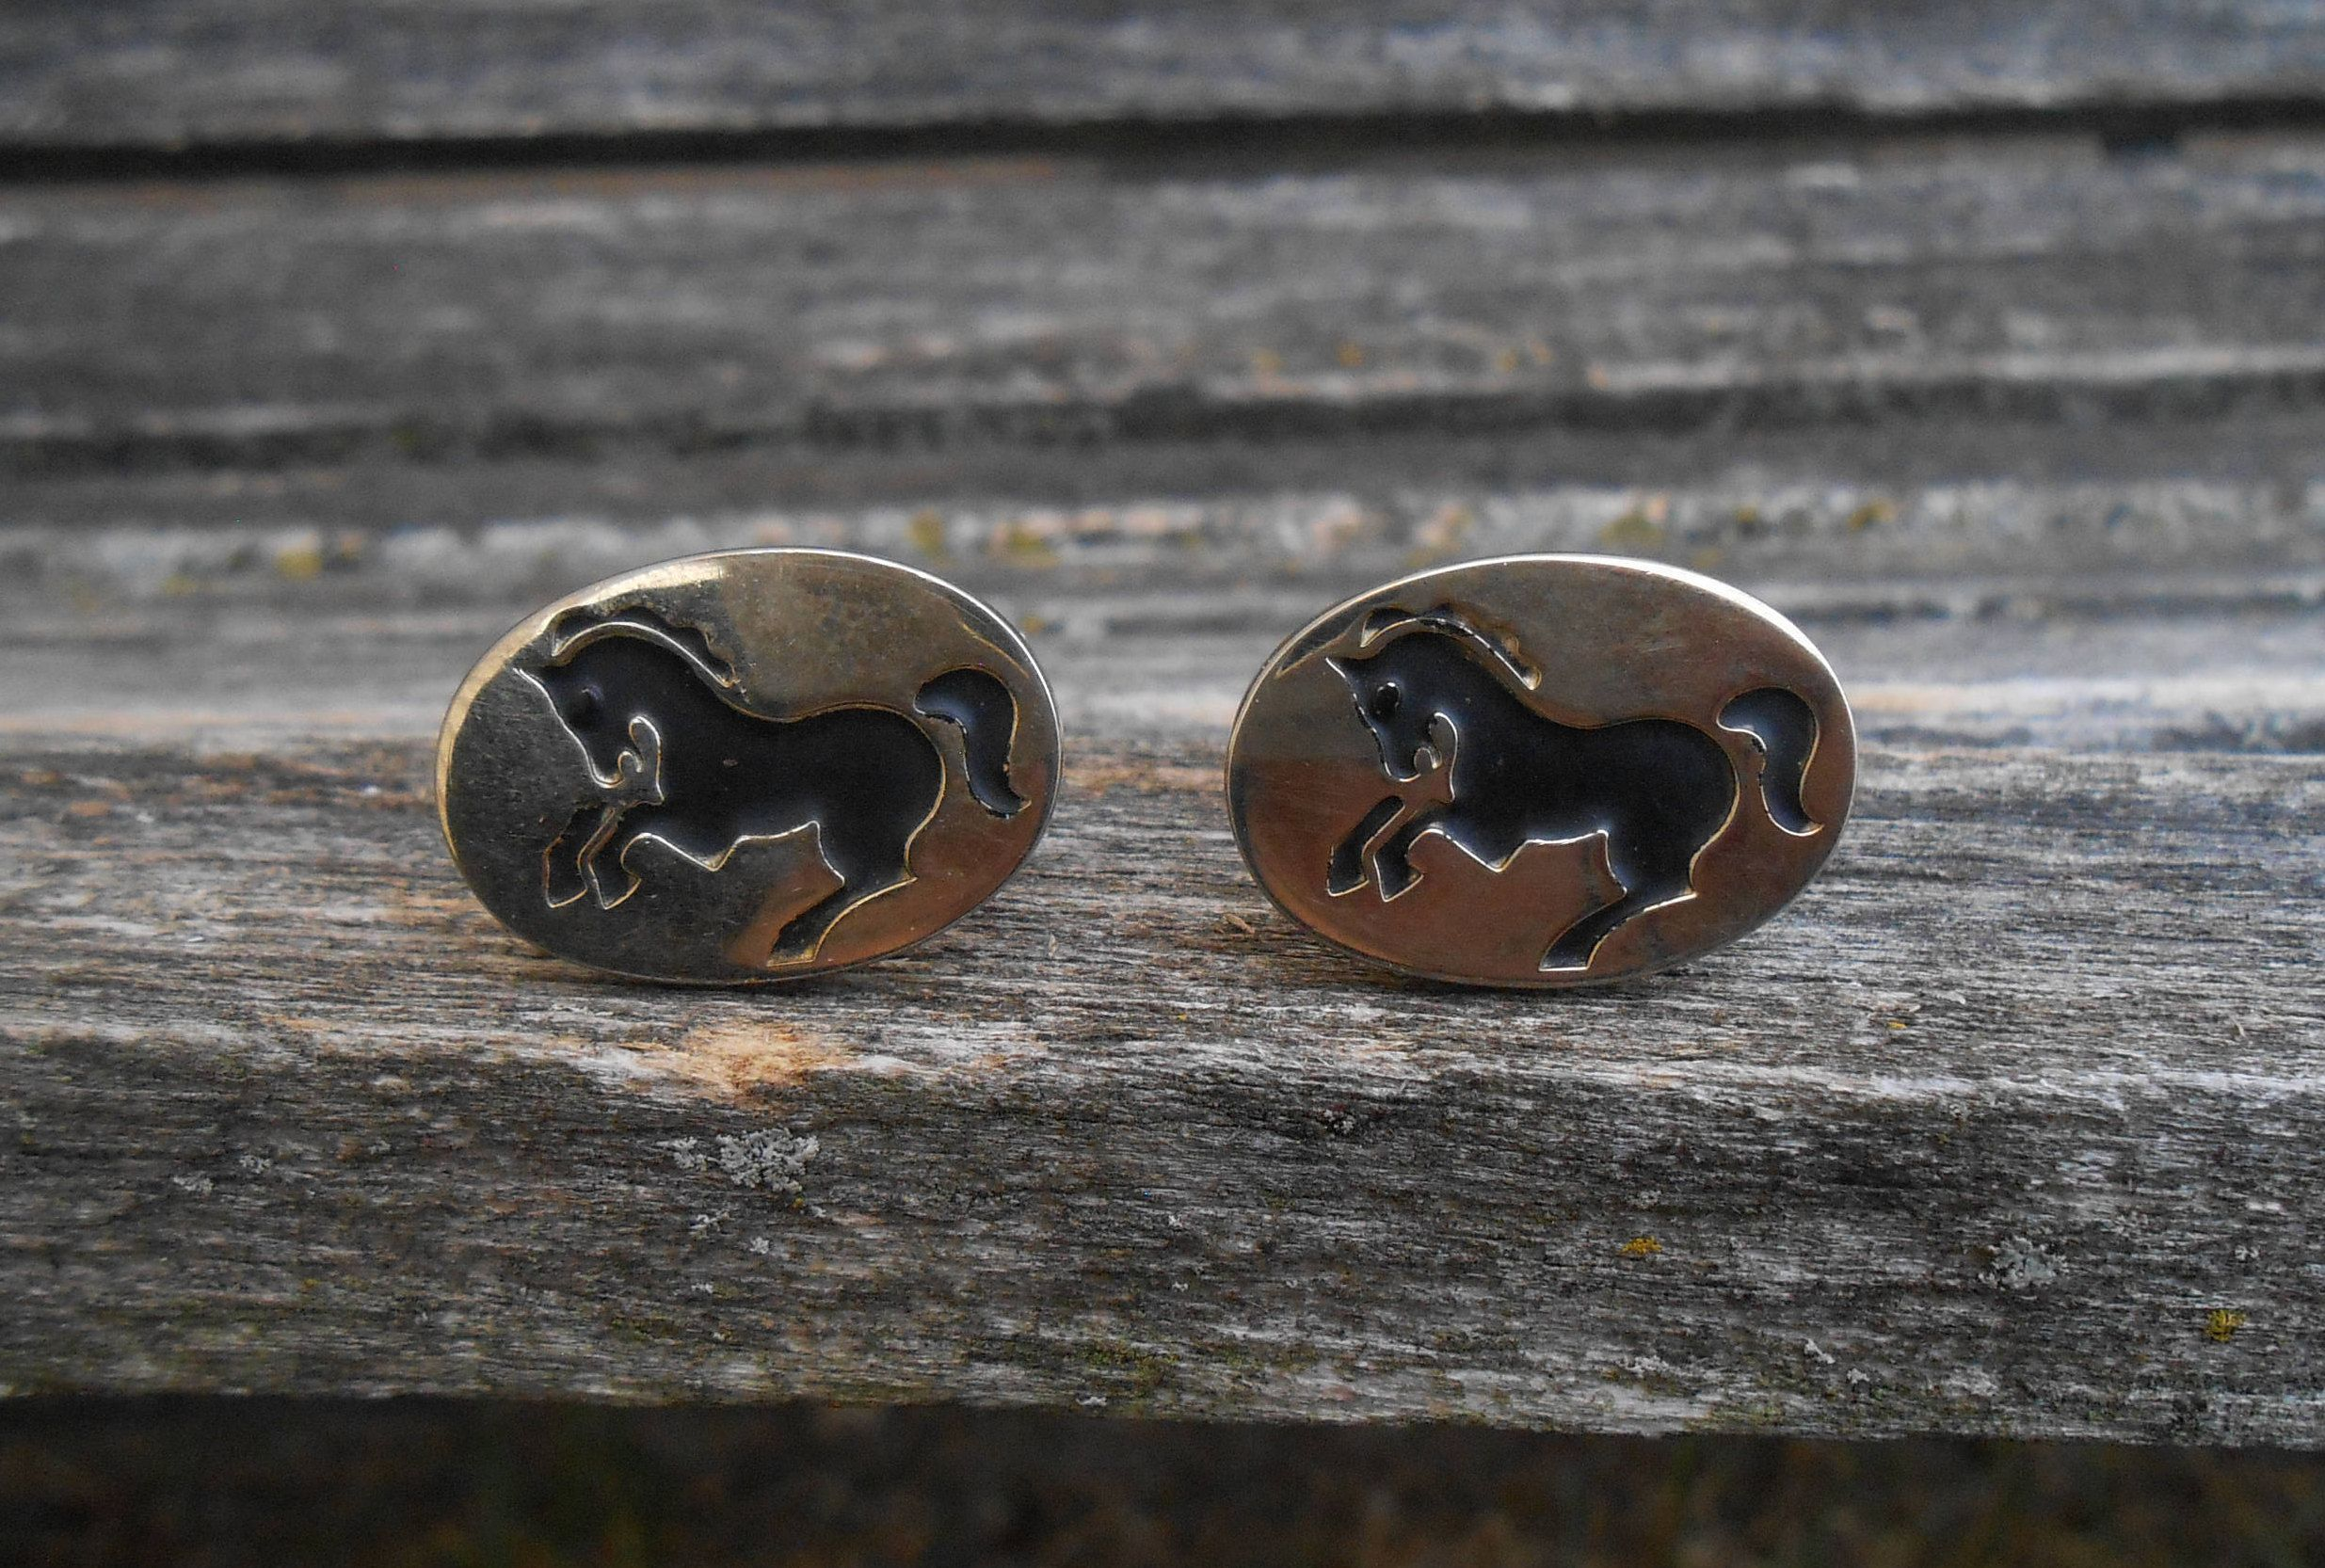 Birthday Christmas Groomsmen Father/'s Day. Vintage Bicycle Cufflinks Anniversary Groom Gift For Dad Wedding